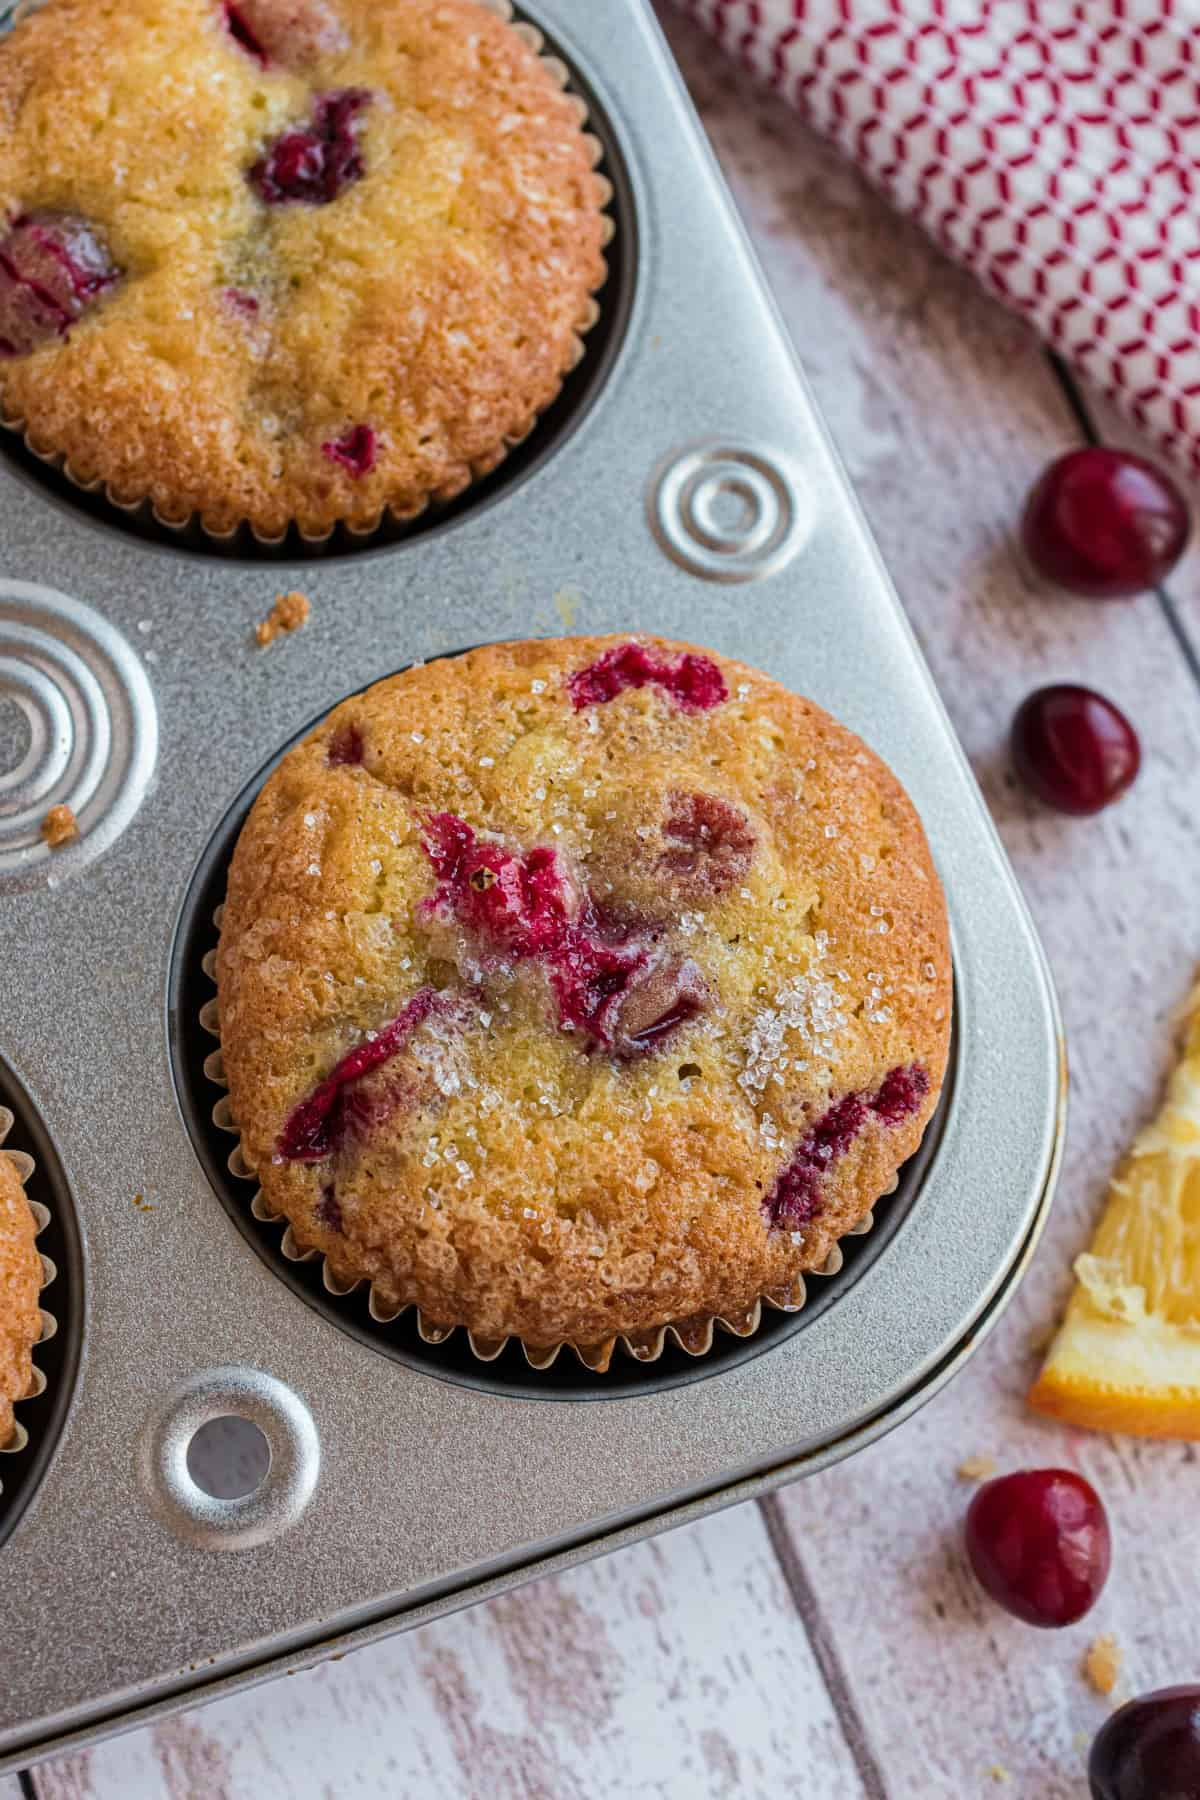 Cranberry orange muffins without the streusel.